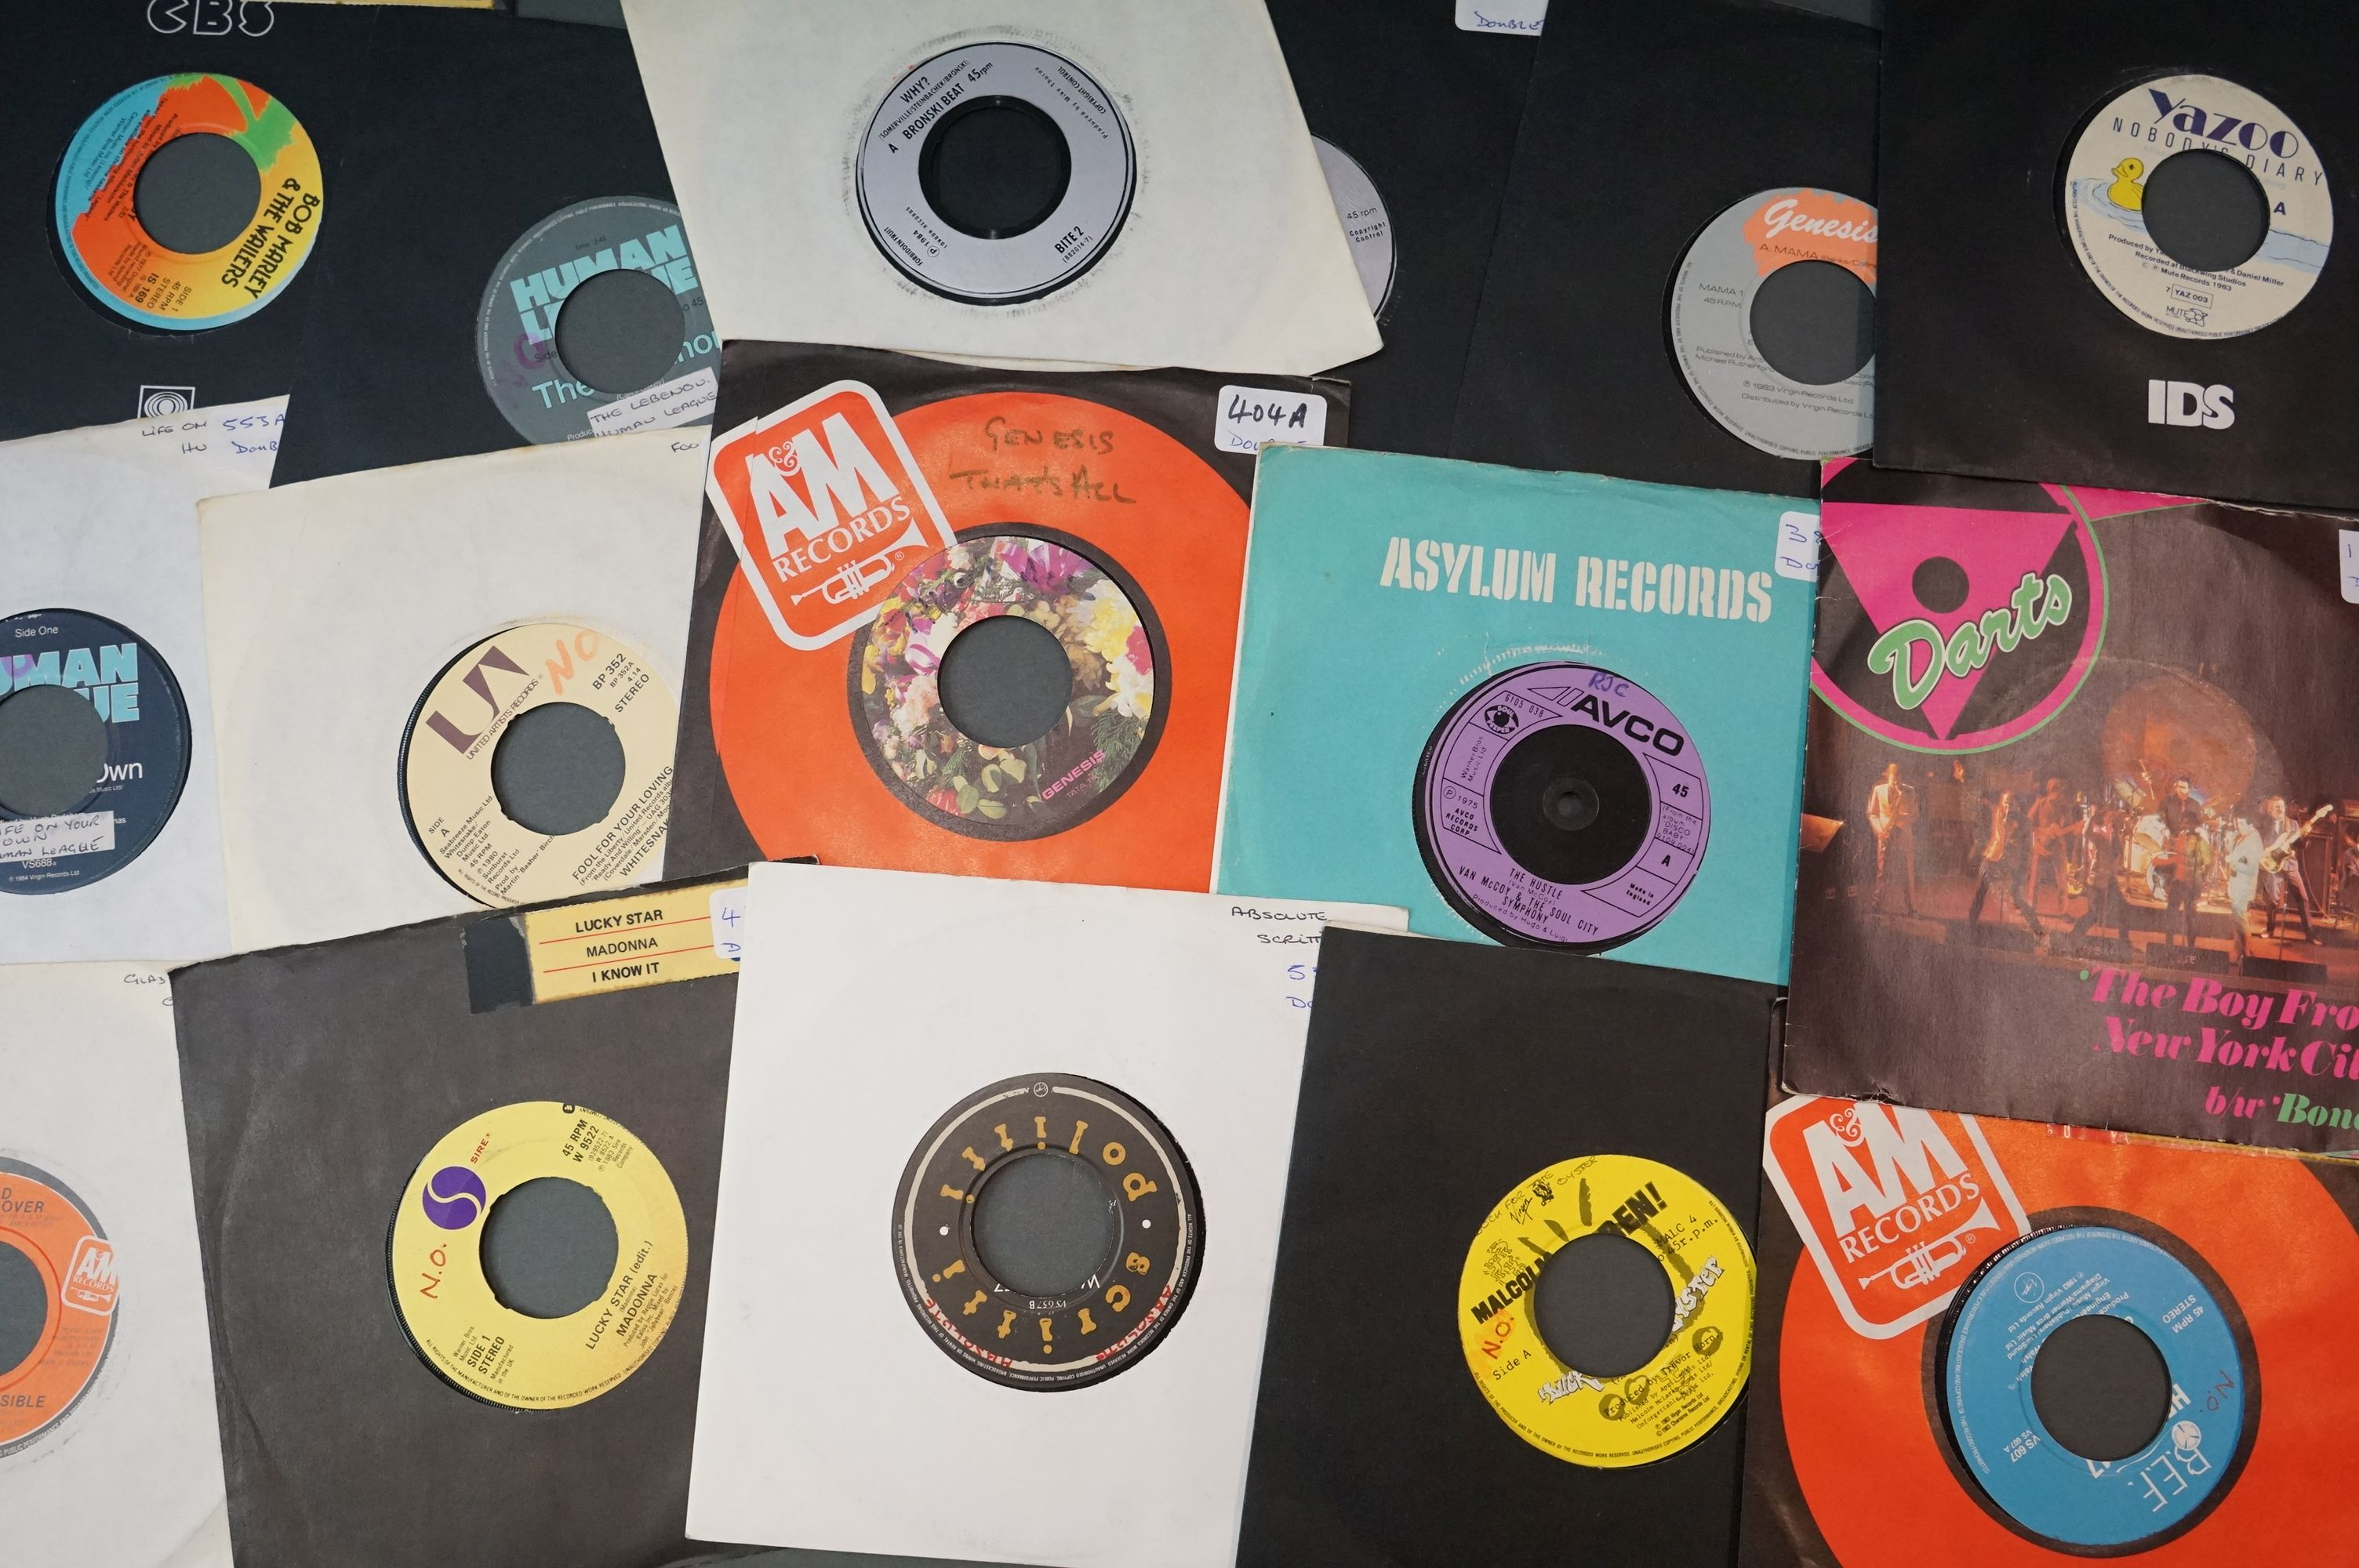 """Vinyl - Towards 600 7"""" singles spanning the genres and decades, company, picture and cardboard - Image 2 of 2"""